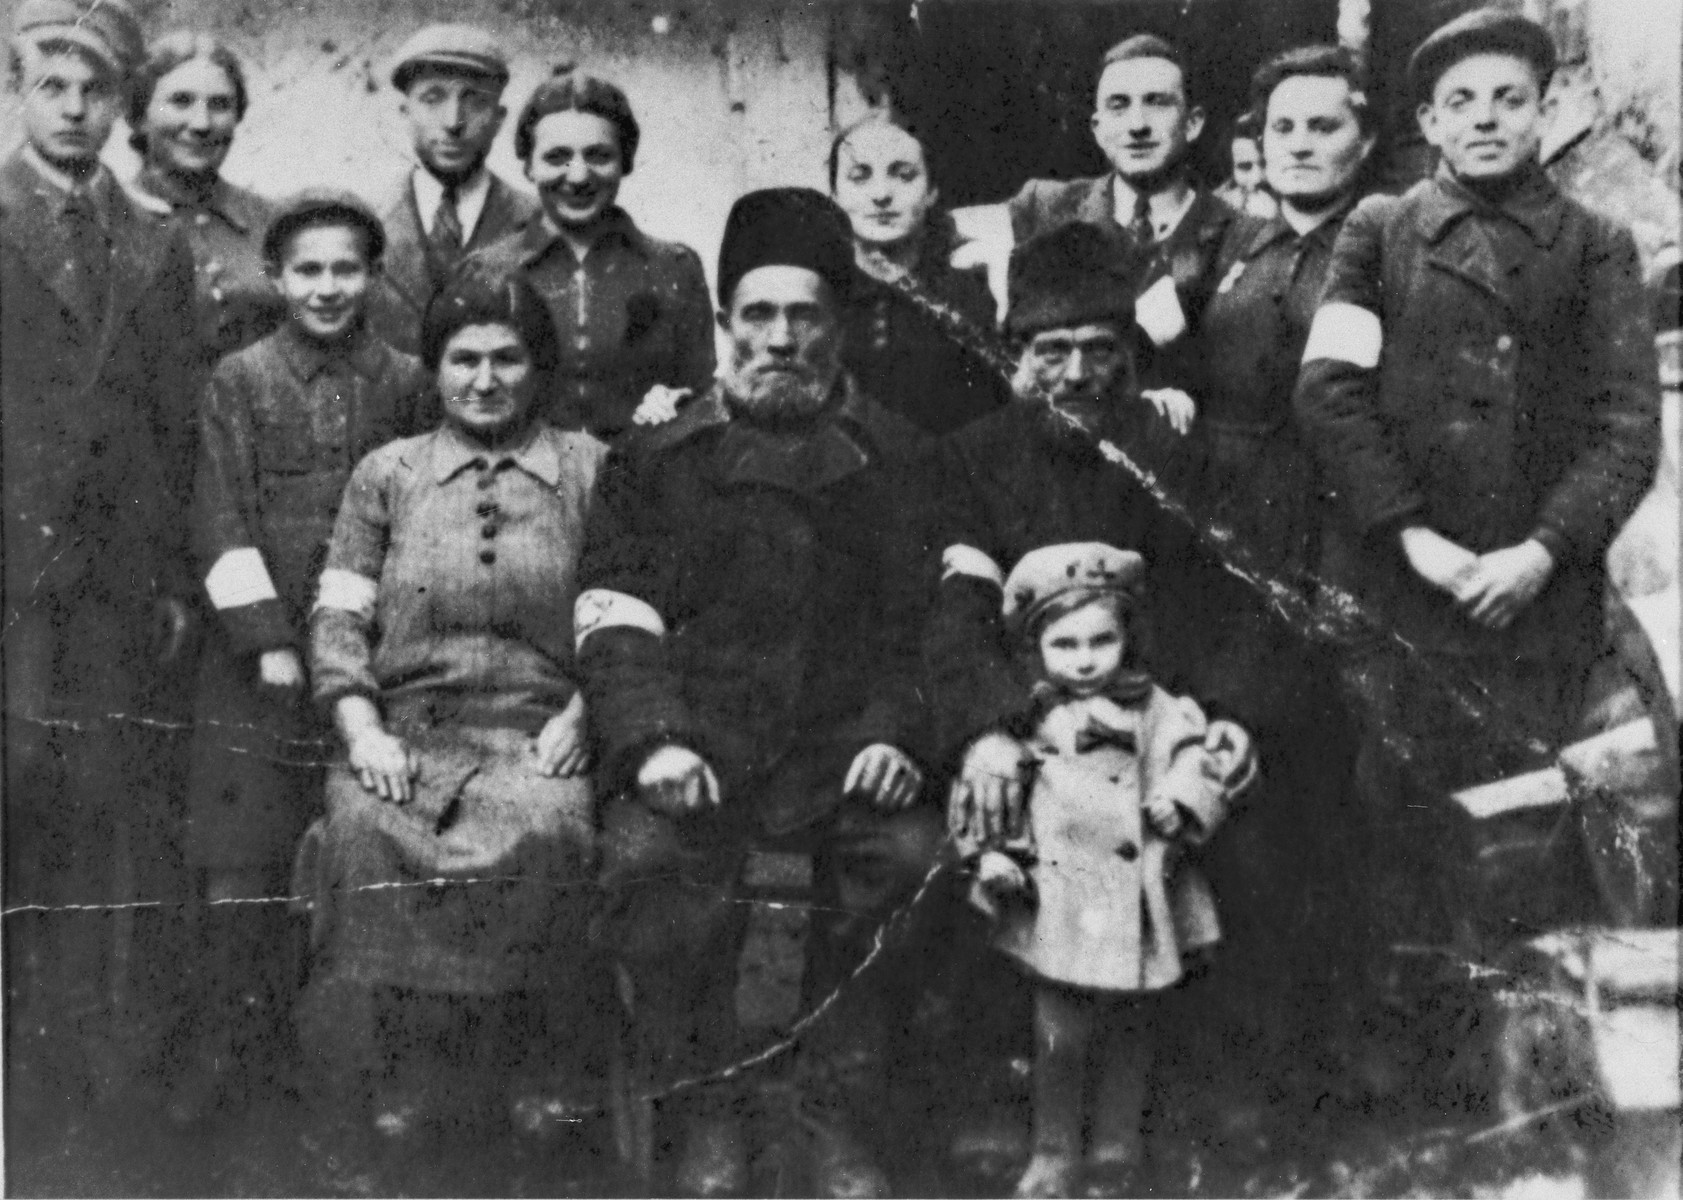 Portrait of the extended Lachter family wearing armbands in the Turobin ghetto.  Standing in front is the child Devorah Lachter.  Seated from left to right are: Chaja and Mottel Leichter, with Mottel's brother Moshe Lachter.  Standing behind them from left to right are: Ozer Leichter, Chaya Golda Lachter, Shaya Leichter, Avrumcha Lachter, Chuma Lachter, Miriam Lachter, Moshe-Leib, Sura Leichter, and Ozer Lachter.  This photograph was sent to Yosef Lachter and his cousin Herish Leichter who had fled to the Soviet zone at the start of the war.  Fearing they would never see their family again, the cousins requested that a family portrait be sent to them.  Thinking that as religious Jews, their family would be reluctant to have themselves photographed, the cousins wrote that they needed the complete family portrait for official identification.